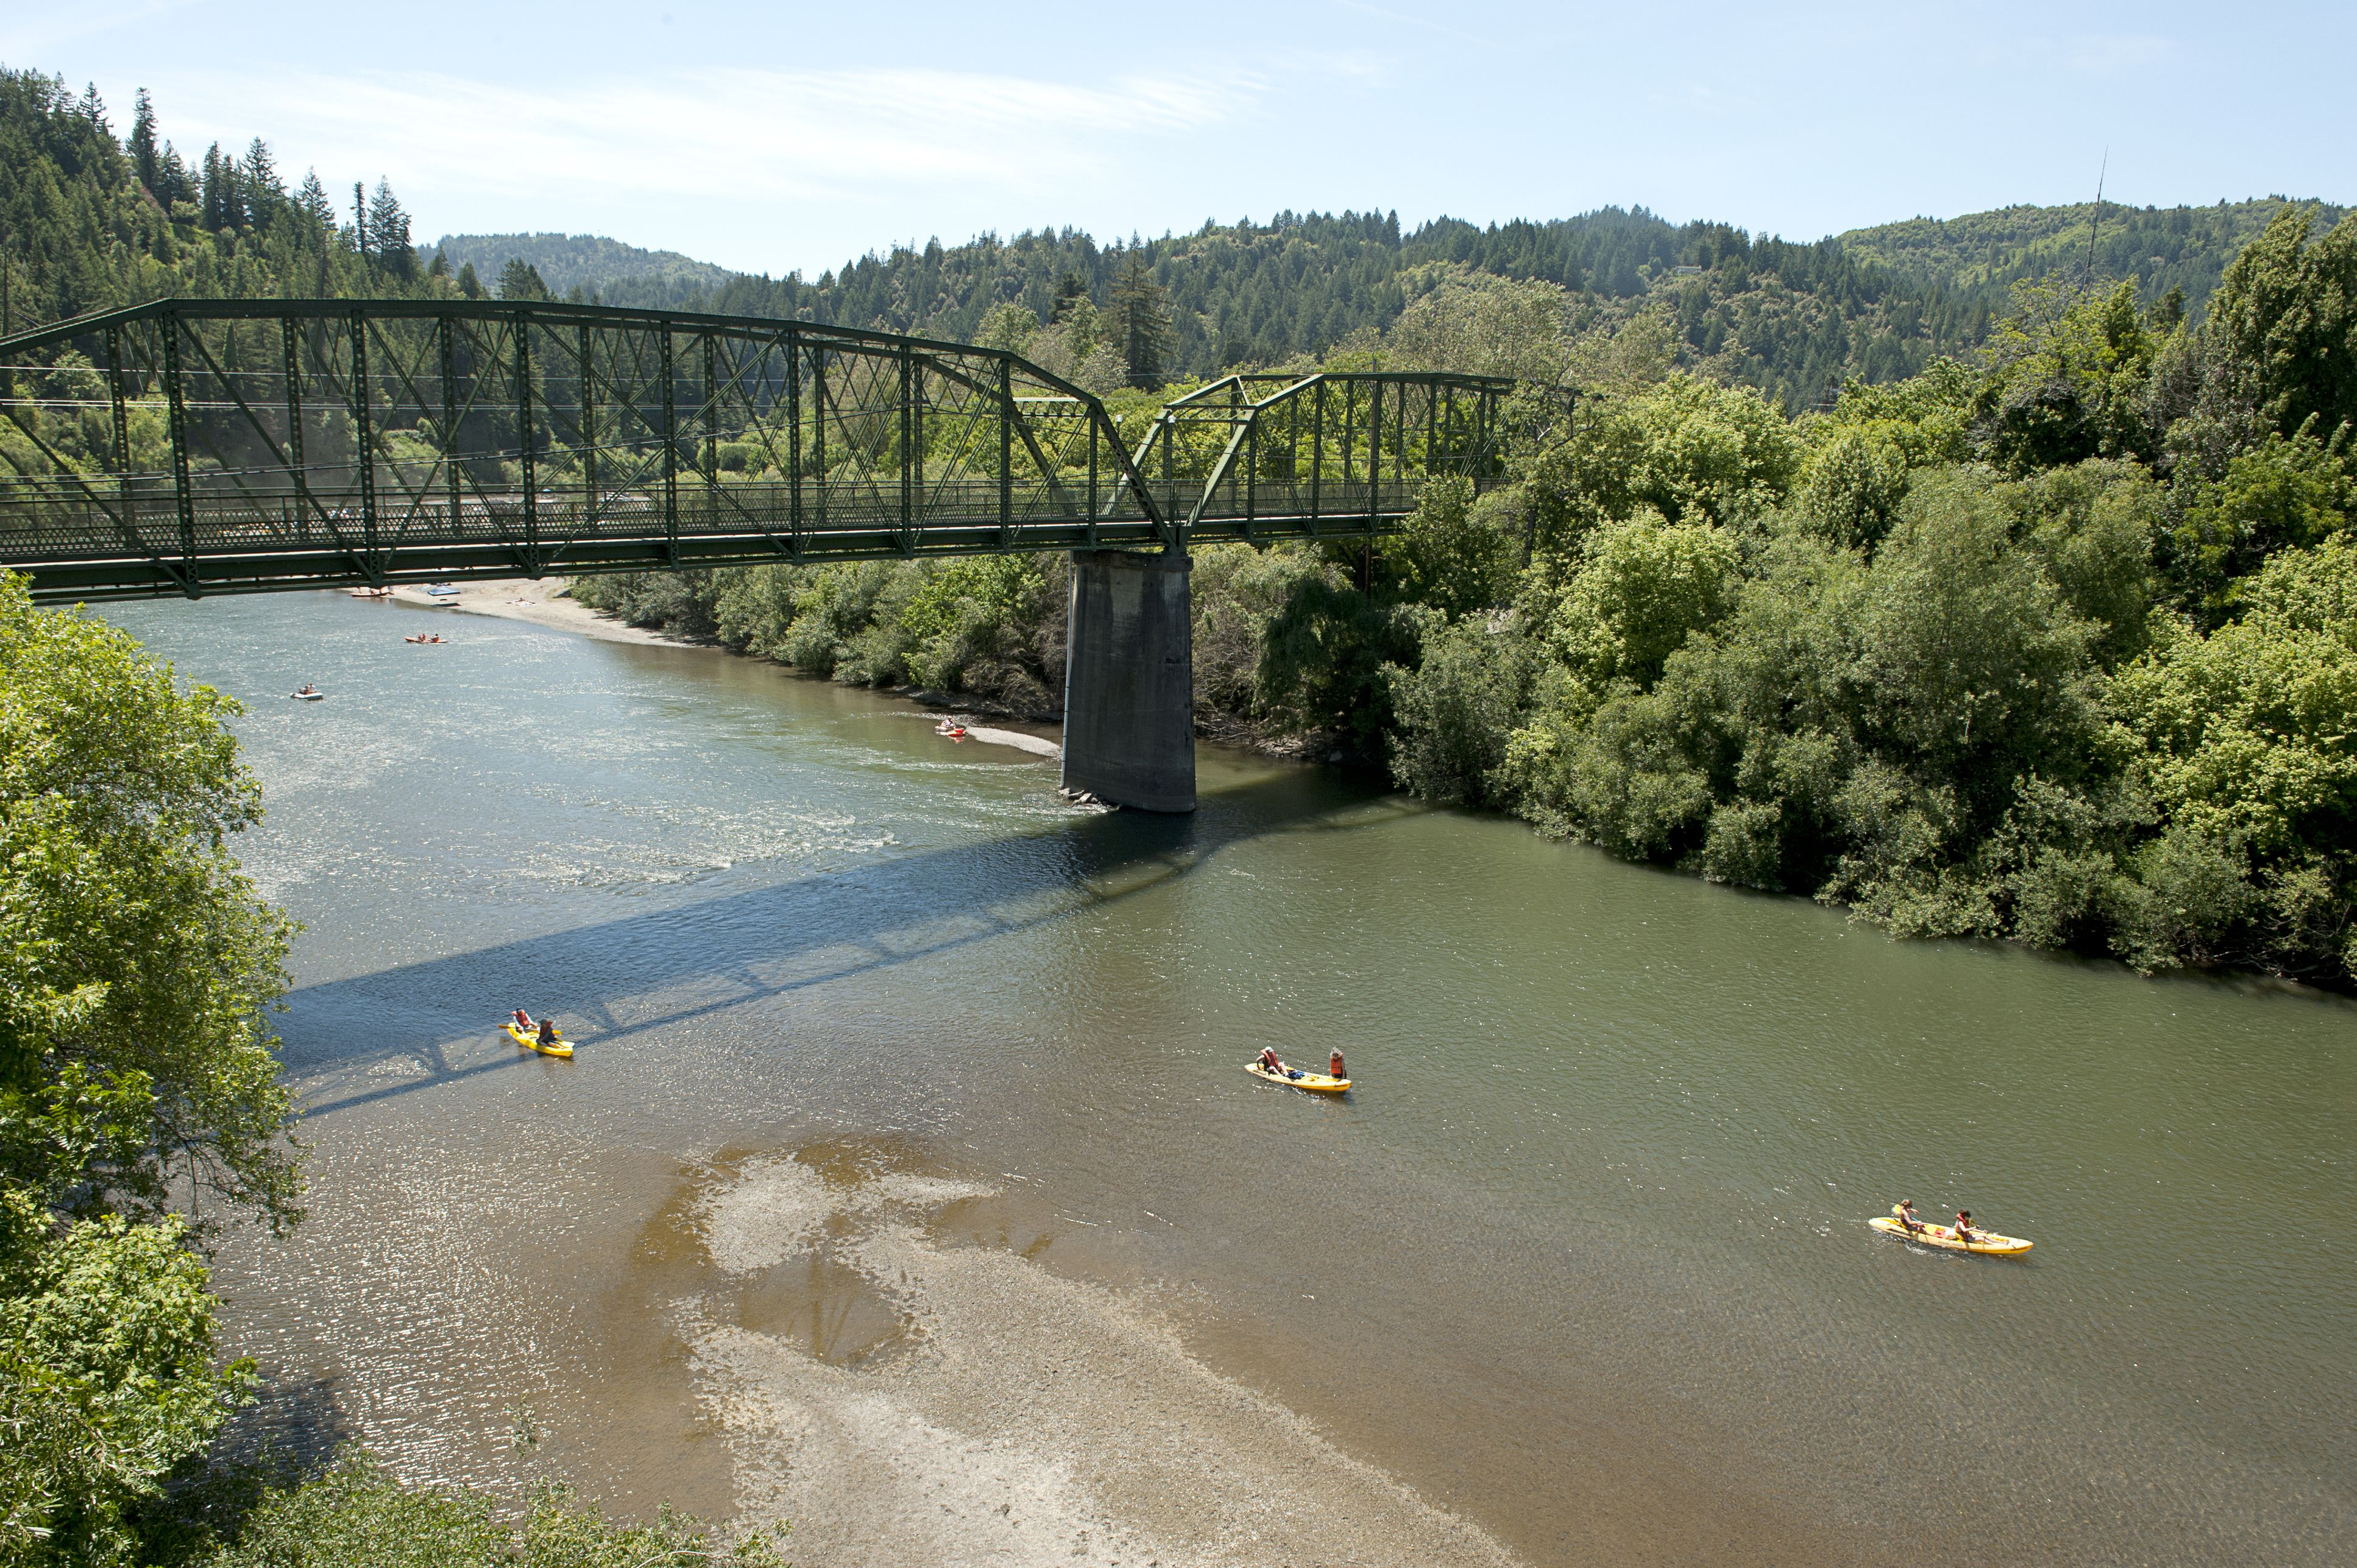 Usa California People Canoeing On Russian River Near Guerneville Bridge